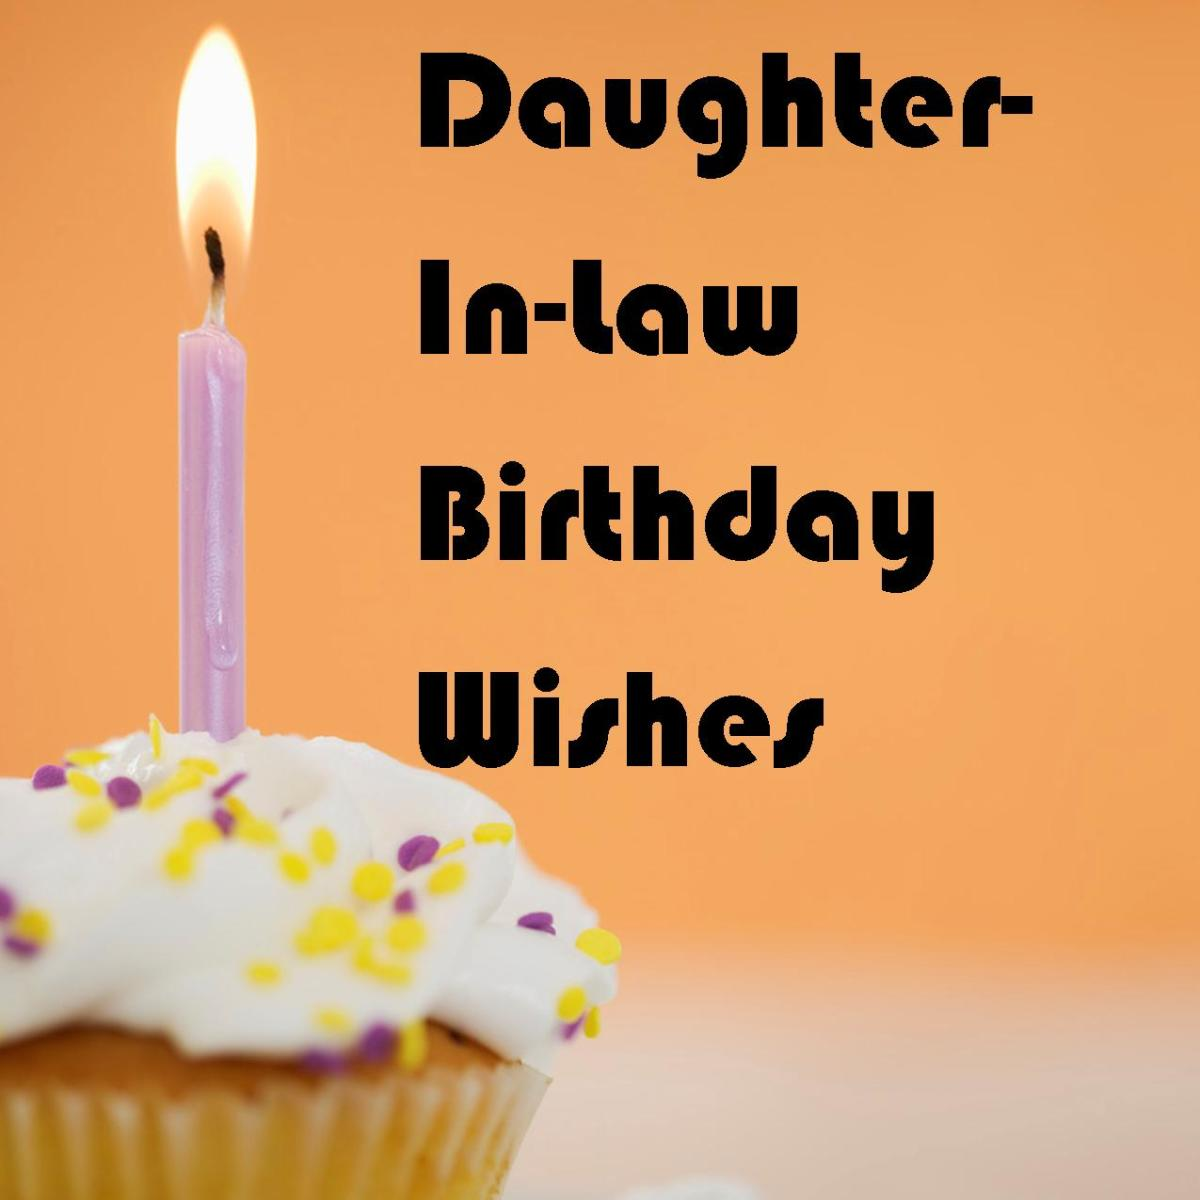 DaughterInLaw Birthday Wishes What to Write in Her Card – Religious Birthday Card Messages